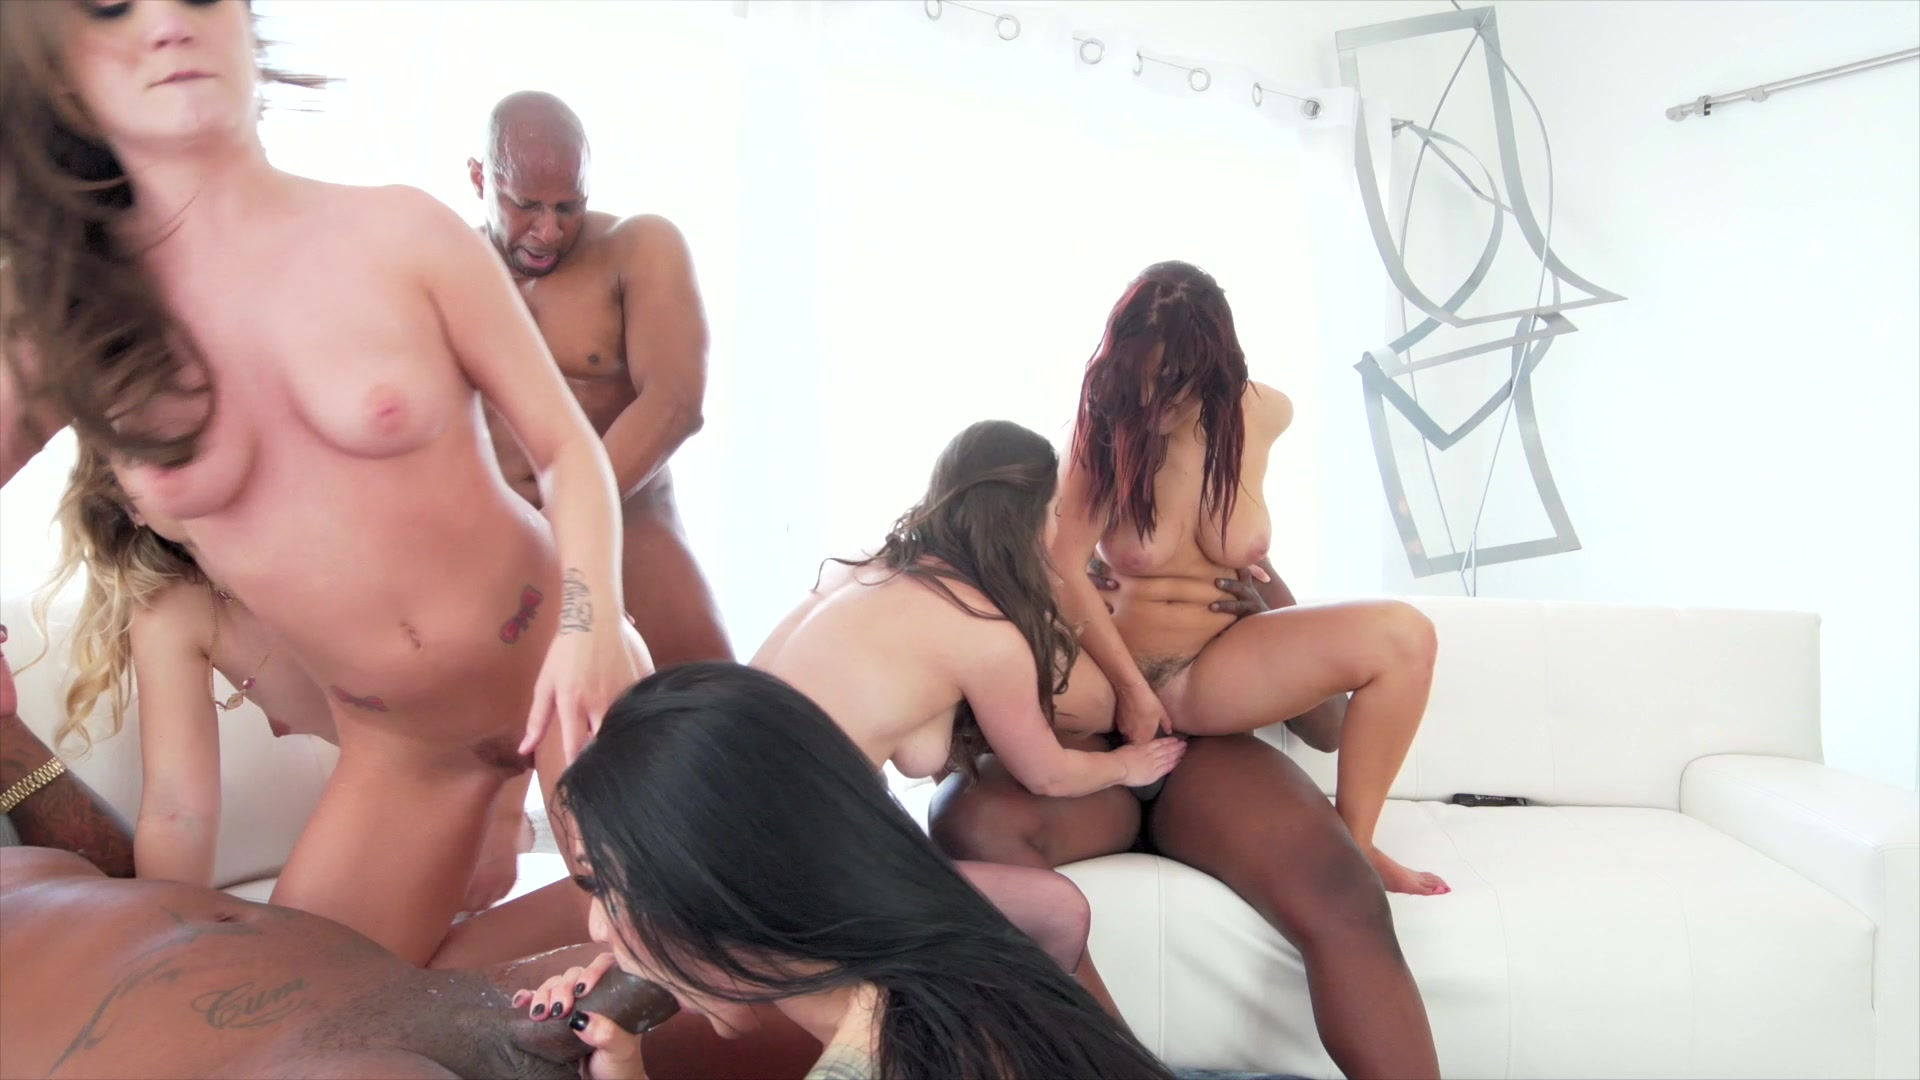 Scene with Casey Calvert, Keisha Grey, Katrina Jade and Goldie Glock - image 14 out of 20